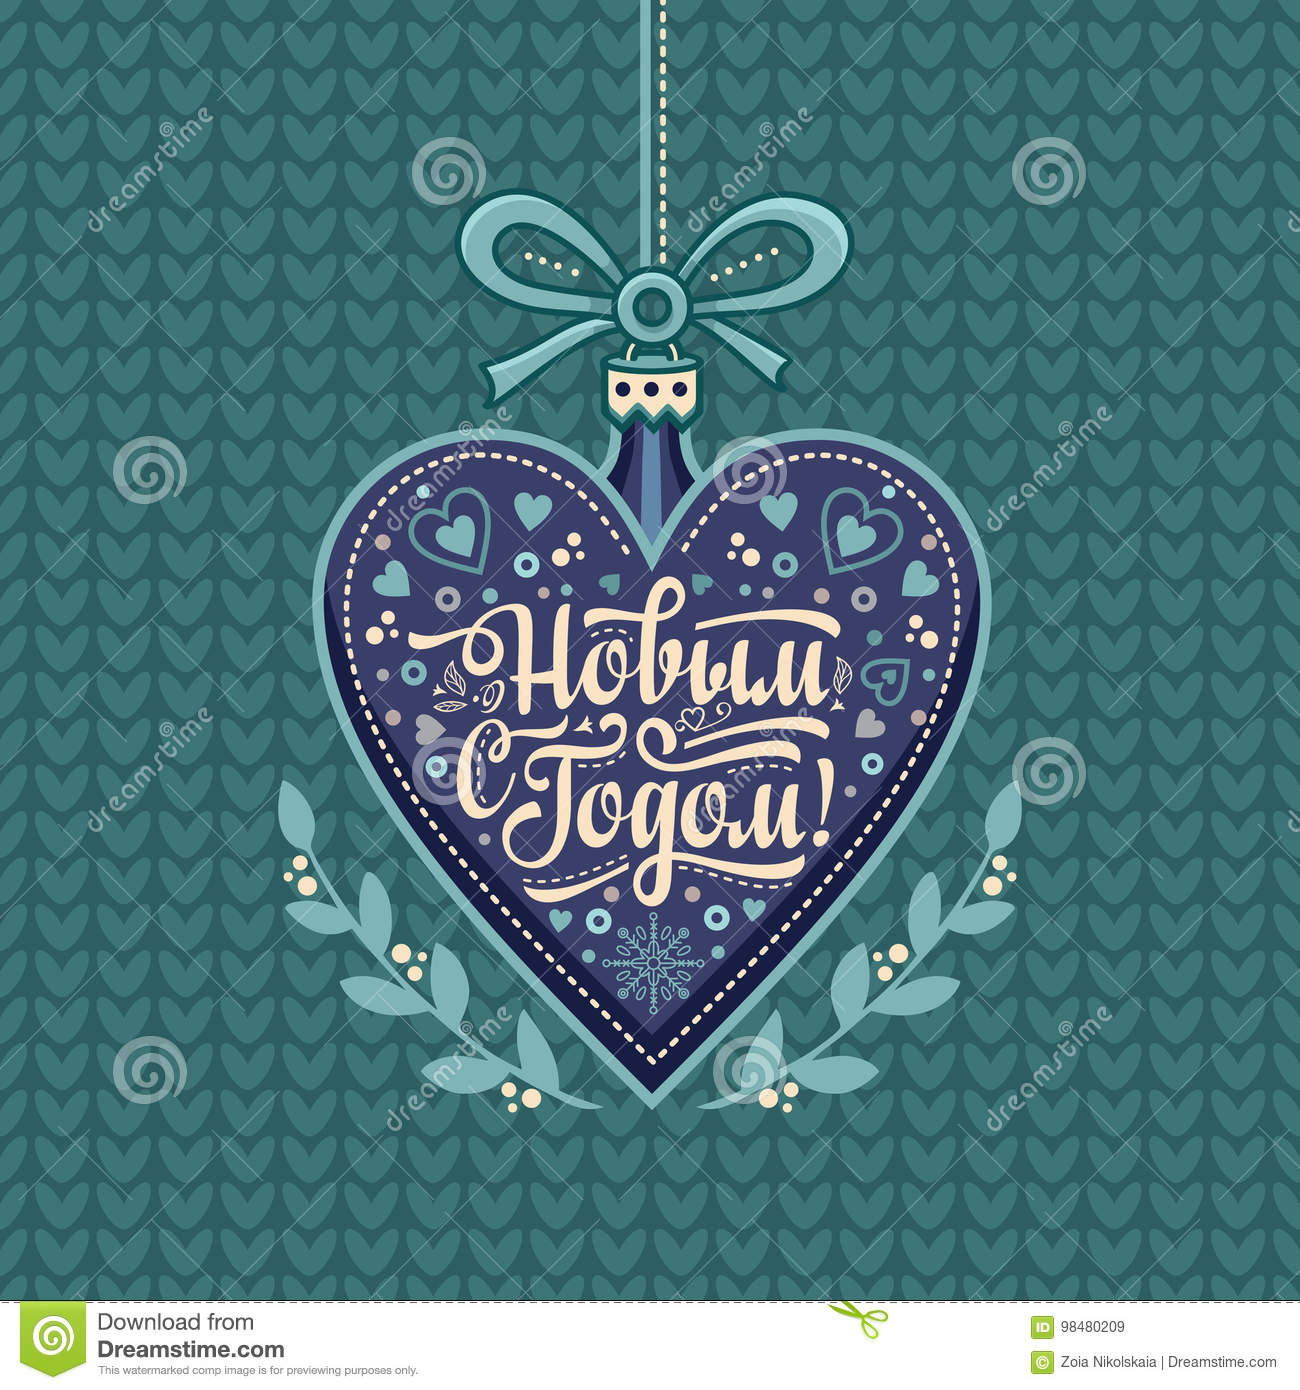 happy new year illustration winer holiday greeting card cyrillic letters english translation happy new year